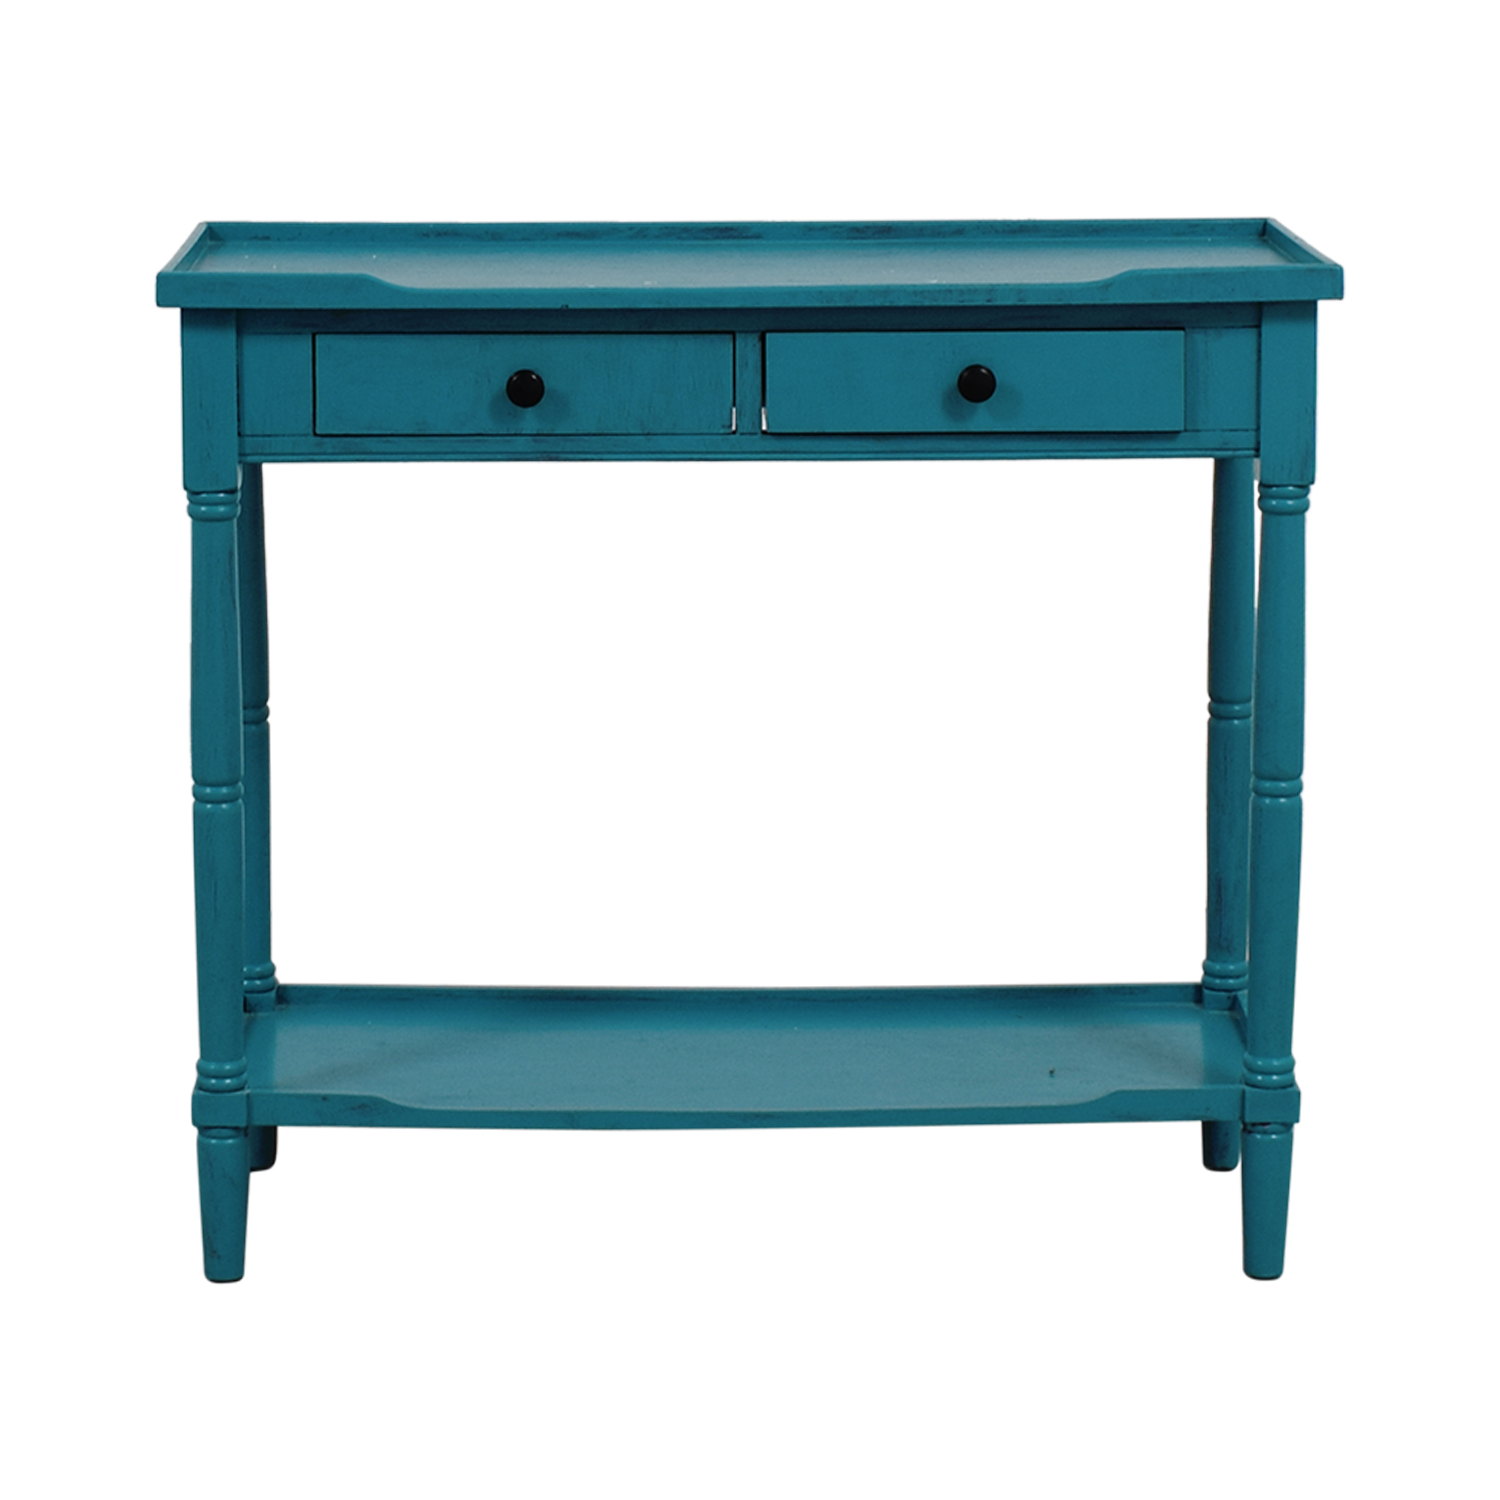 HomeGoods HomeGoods Teal Entryway Table for sale